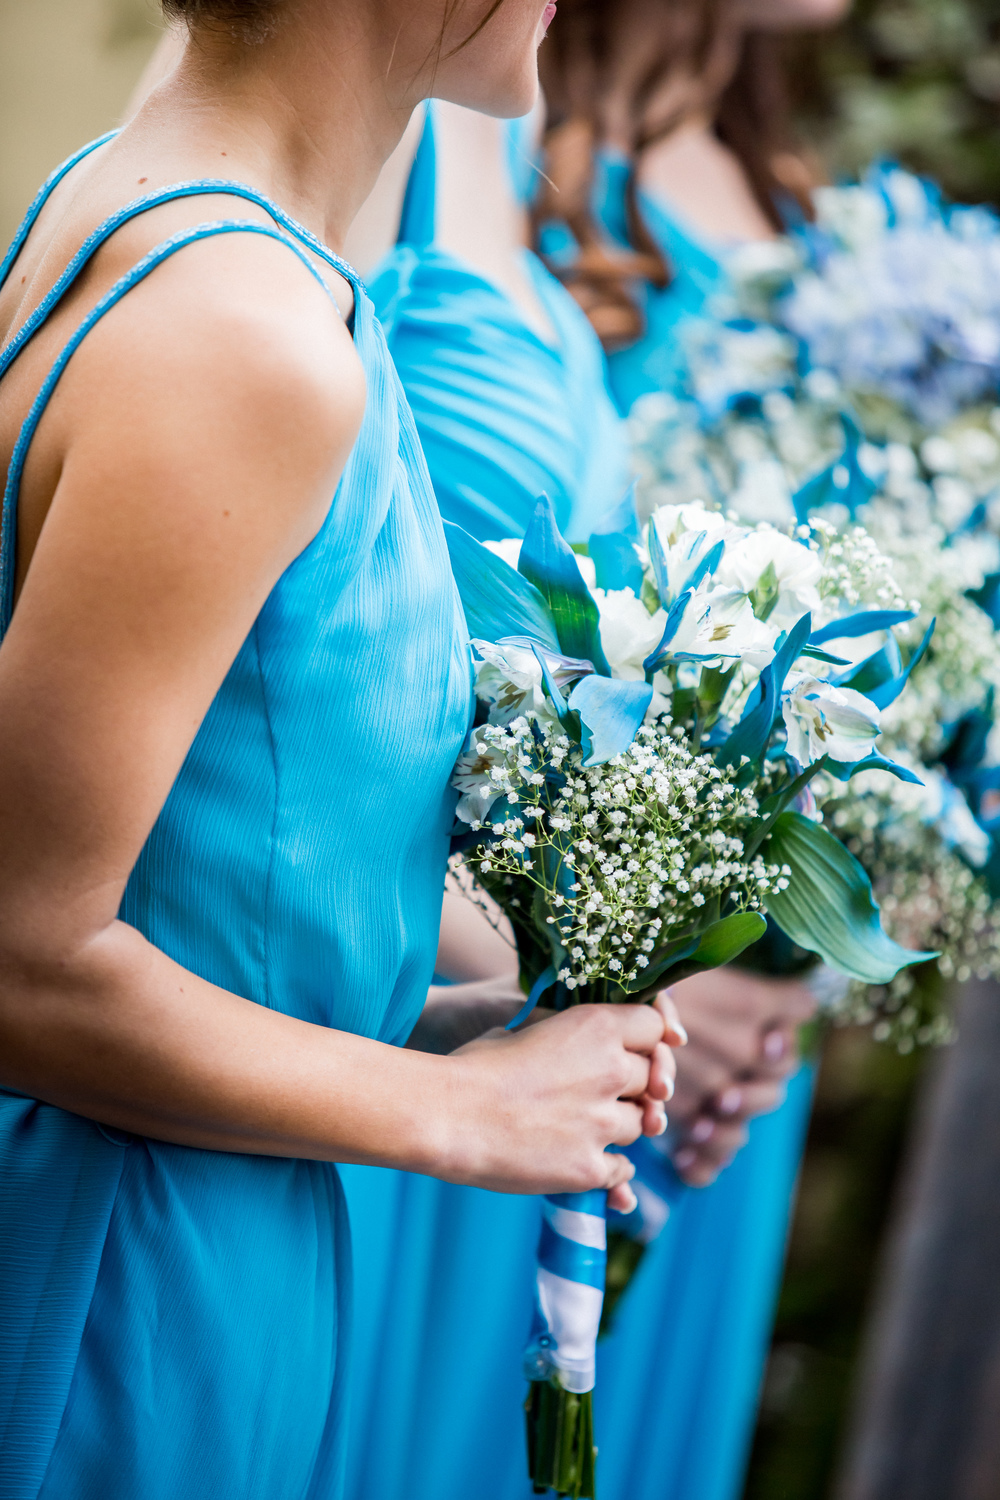 Sky blue wedding bouquet, with white alstromerias, baby's breath, and blue flower petals.